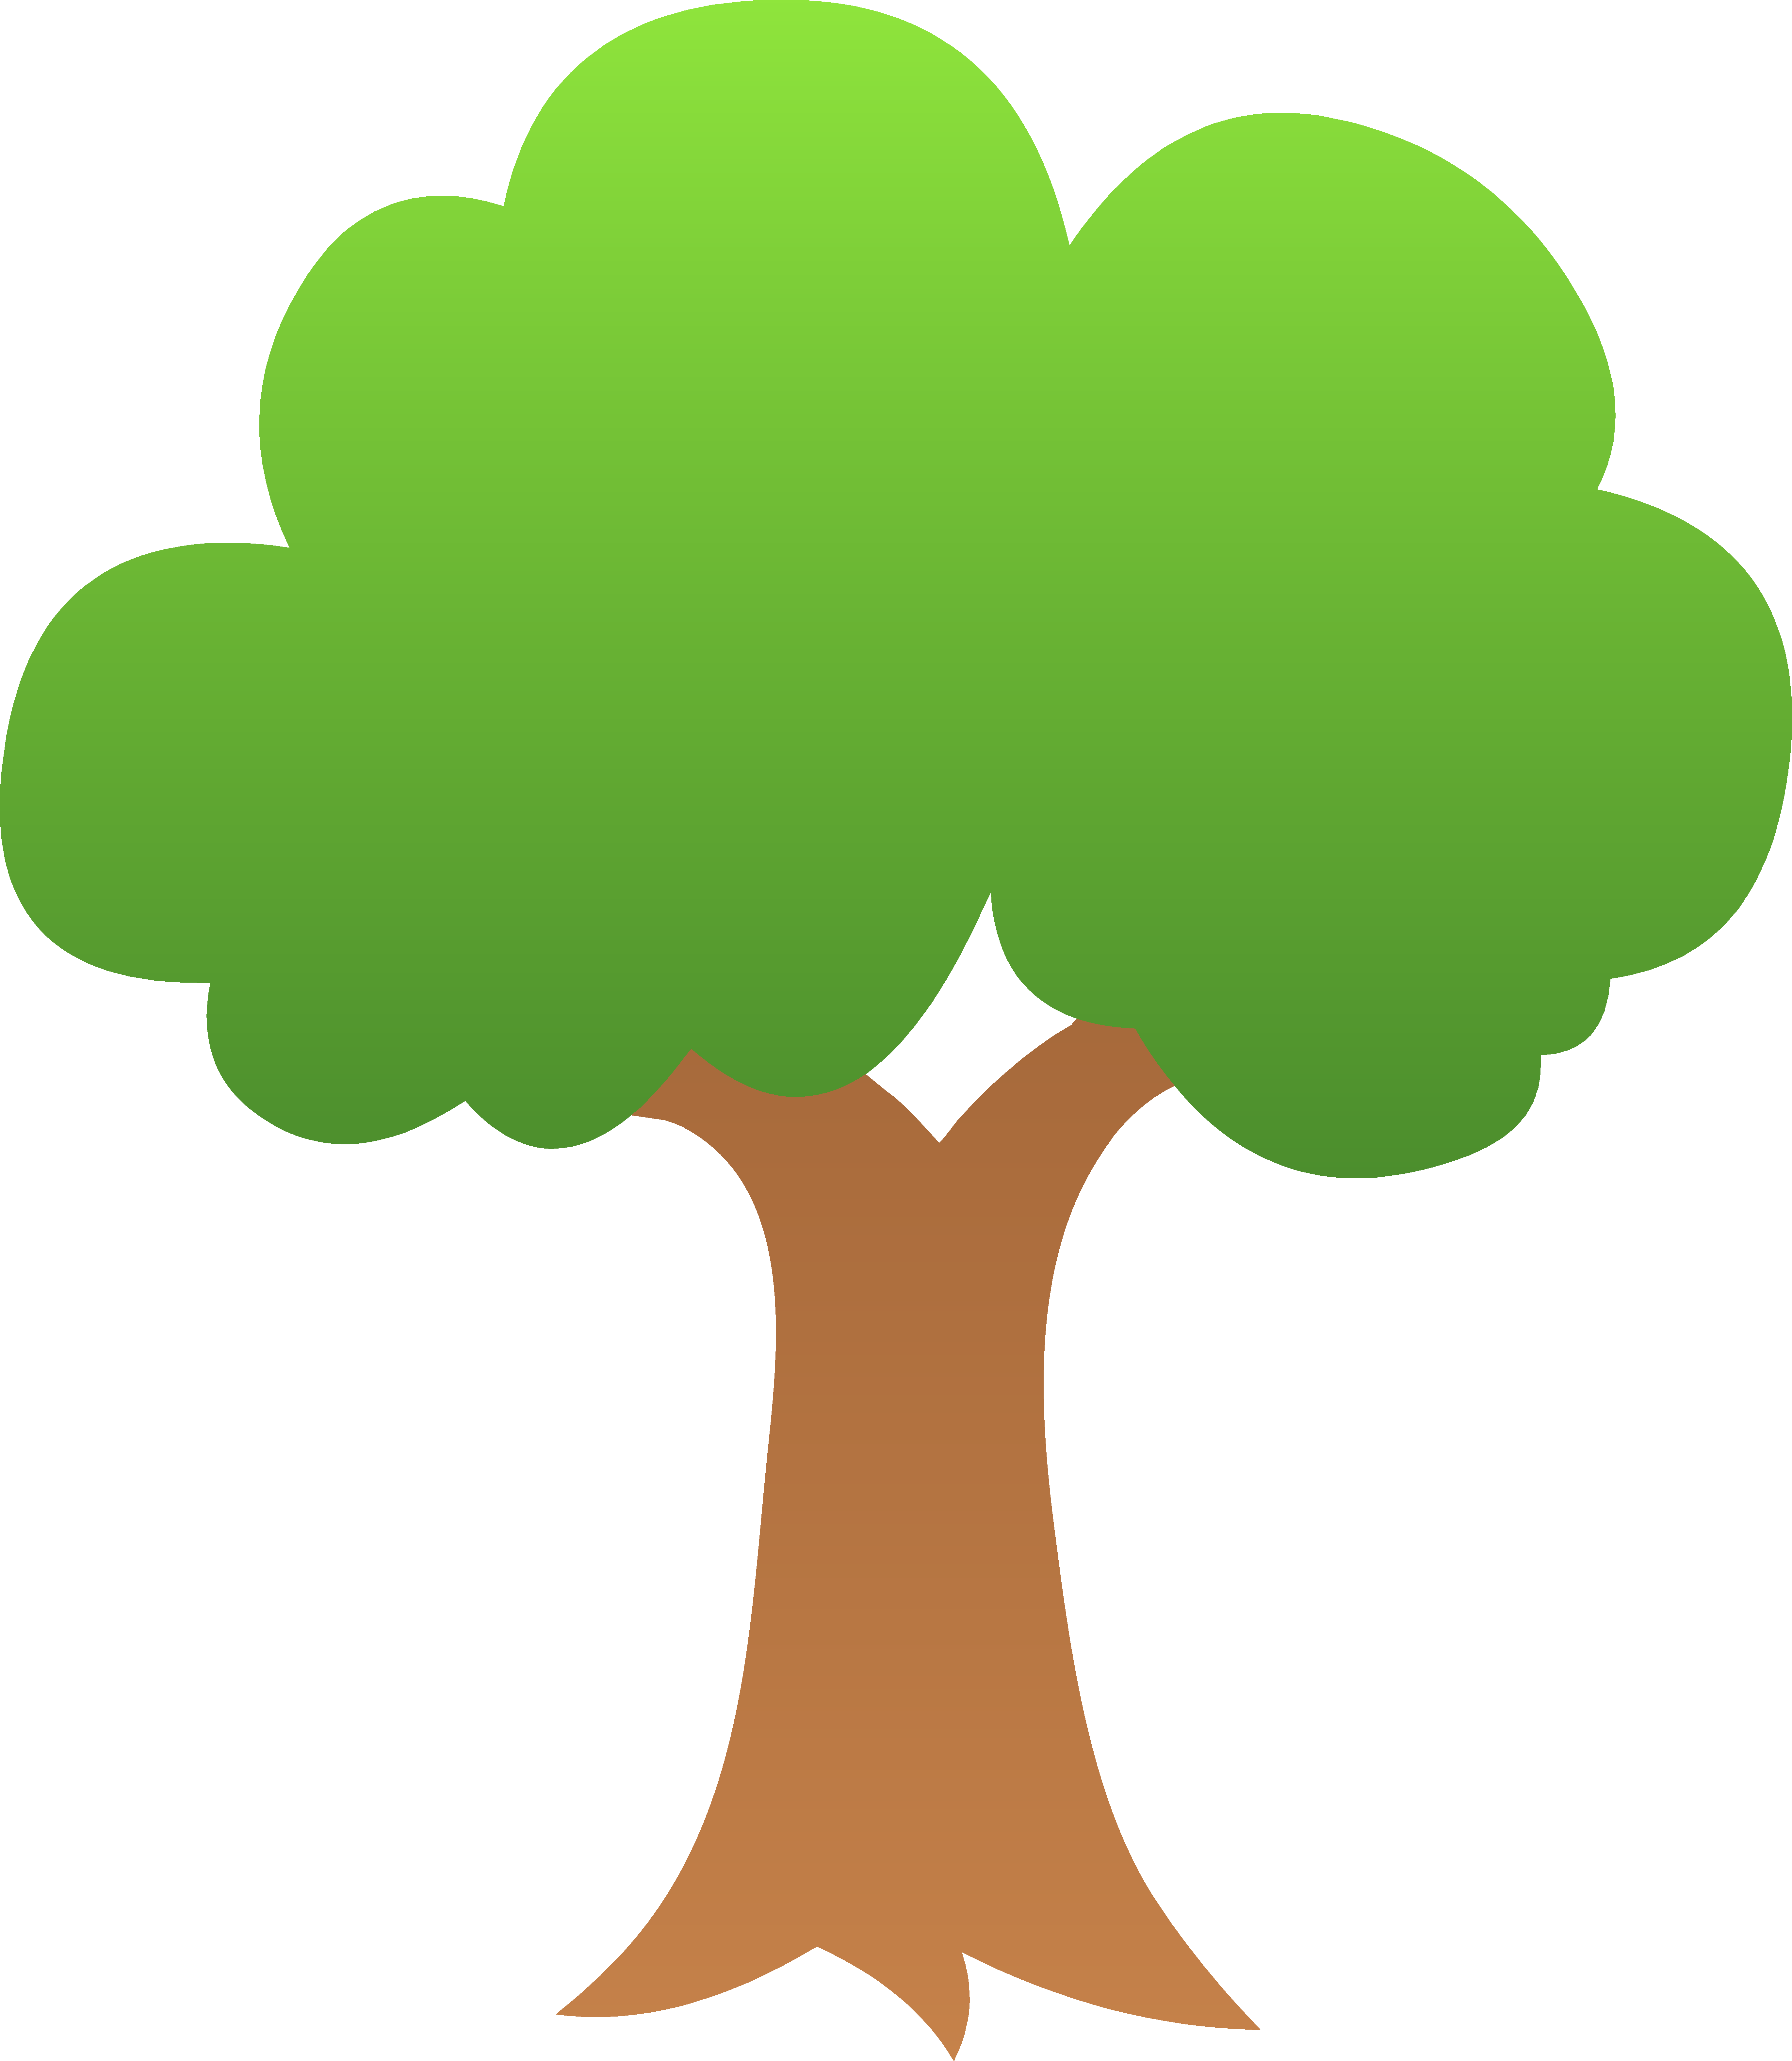 Nature clipart tree. Pencil and in color picture black and white